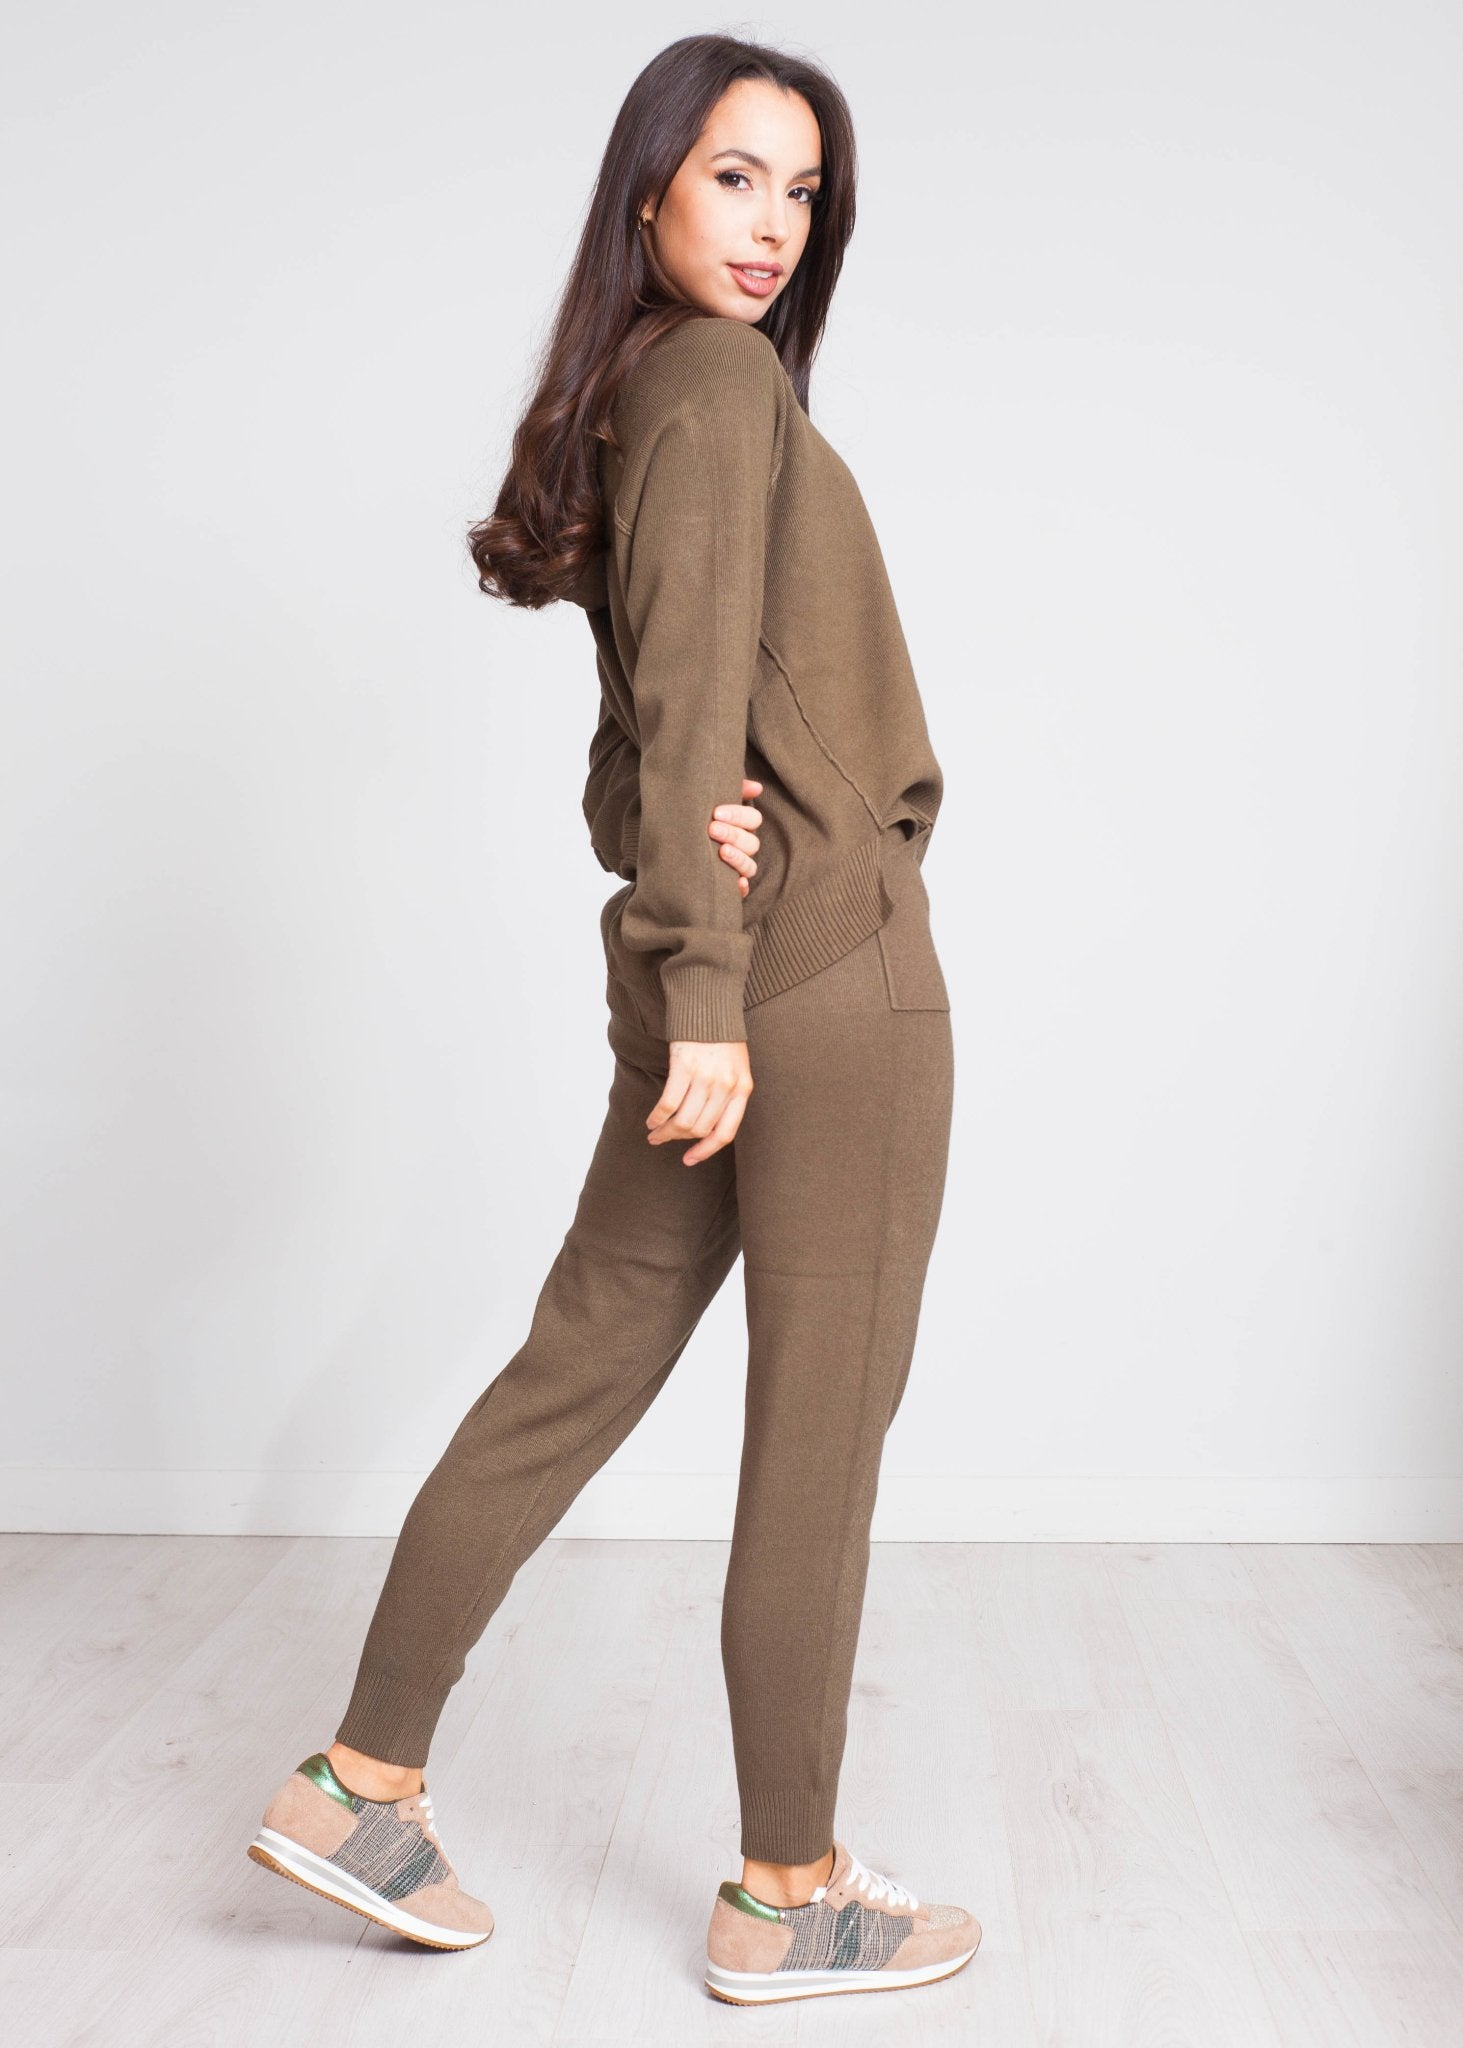 Nora Knit Lounge Set In Khaki - The Walk in Wardrobe